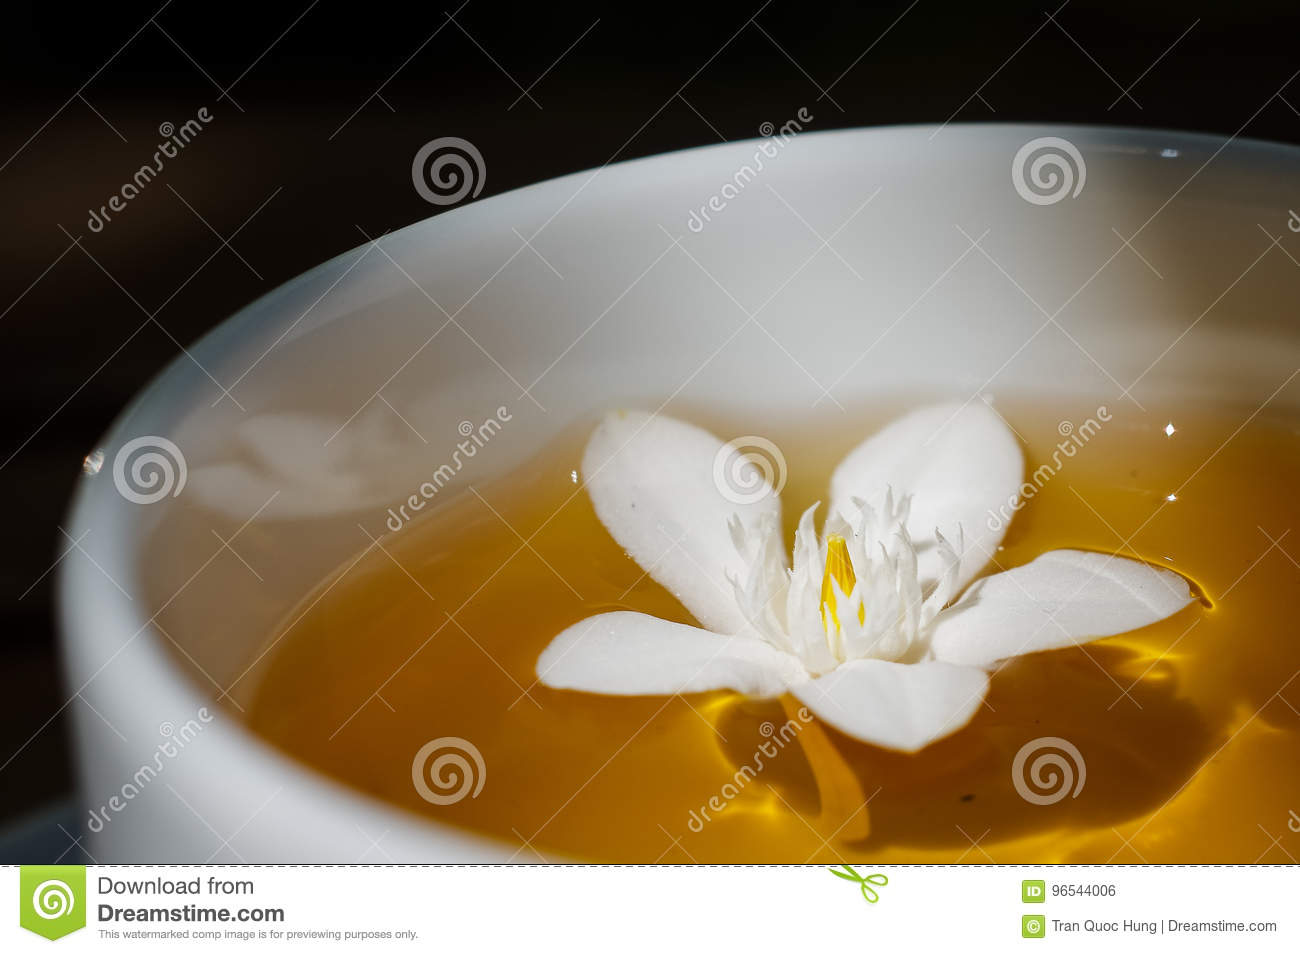 White flower is floating in a cup of tea